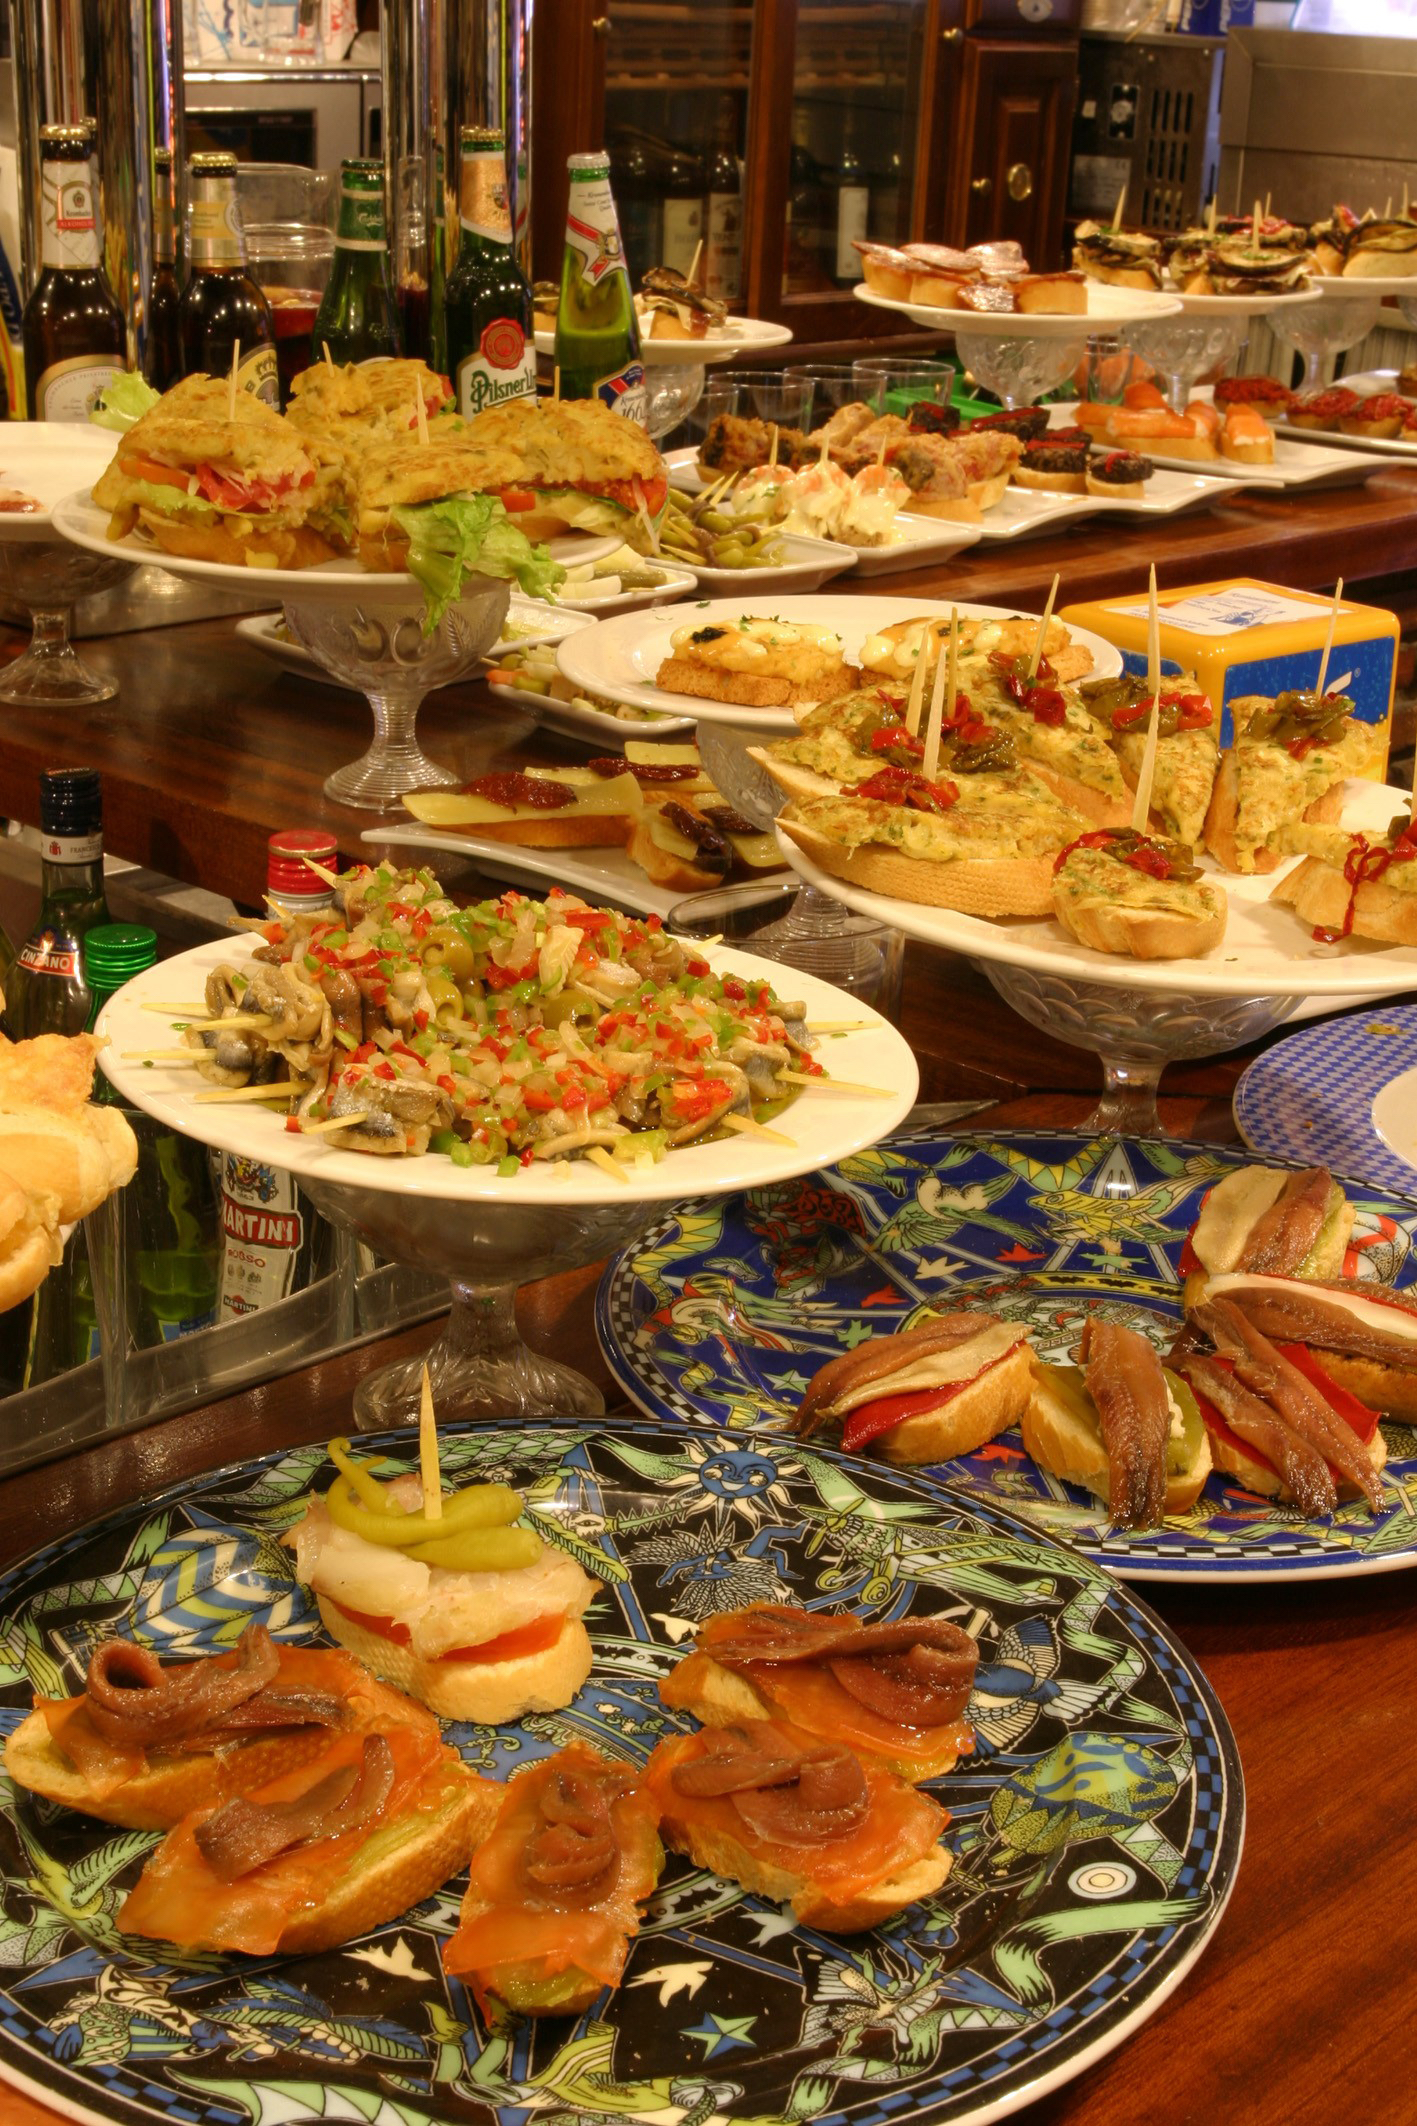 Endless variety of Pintxos (that's how they call tapas here) in the bars of San Sebastian